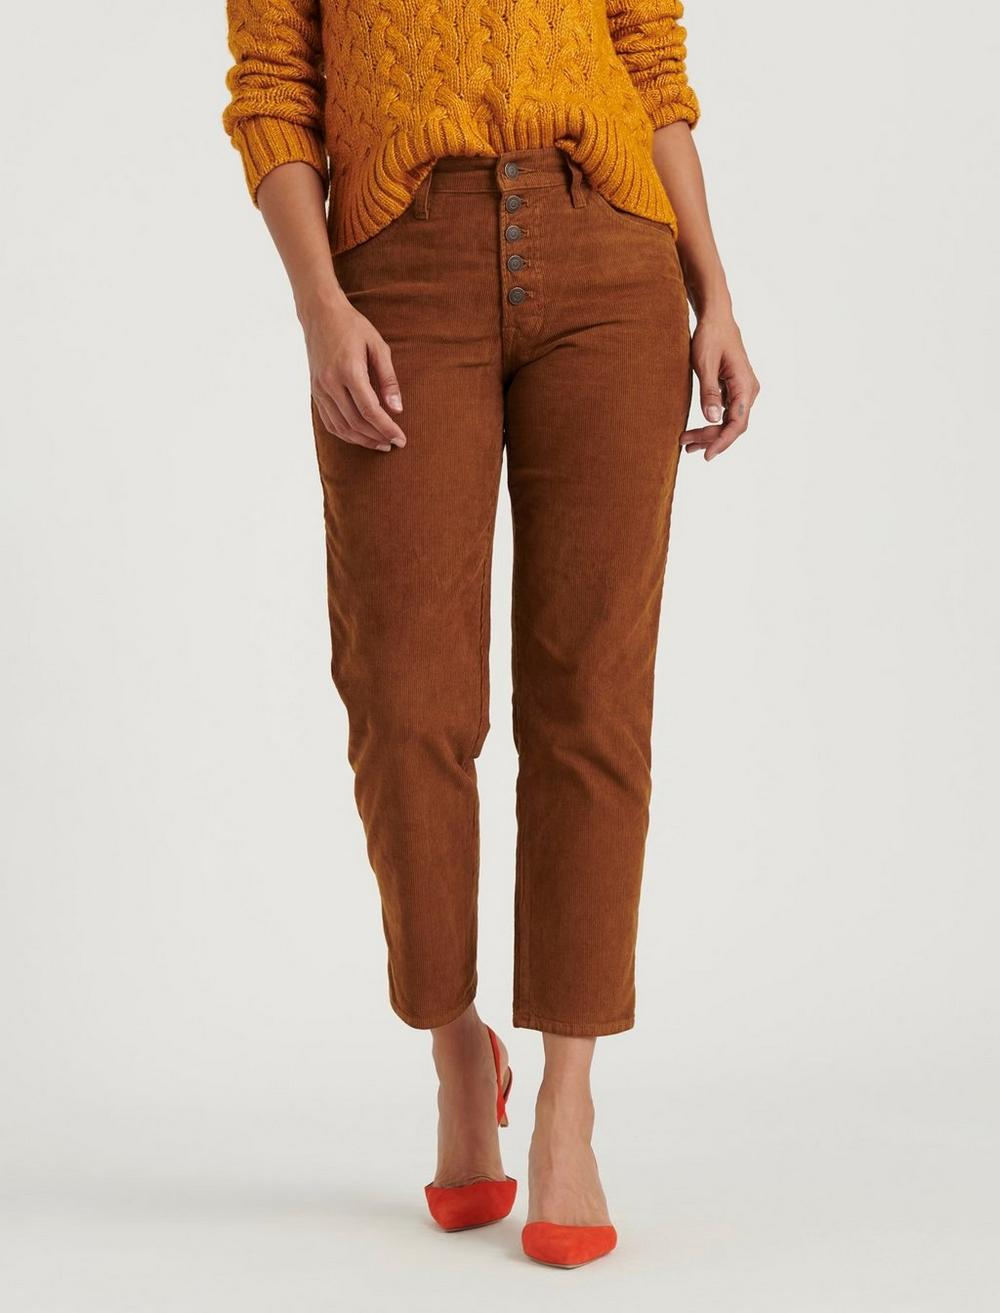 MID RISE AUTHENTIC STRAIGHT CROP CORDUROY JEAN, image 2